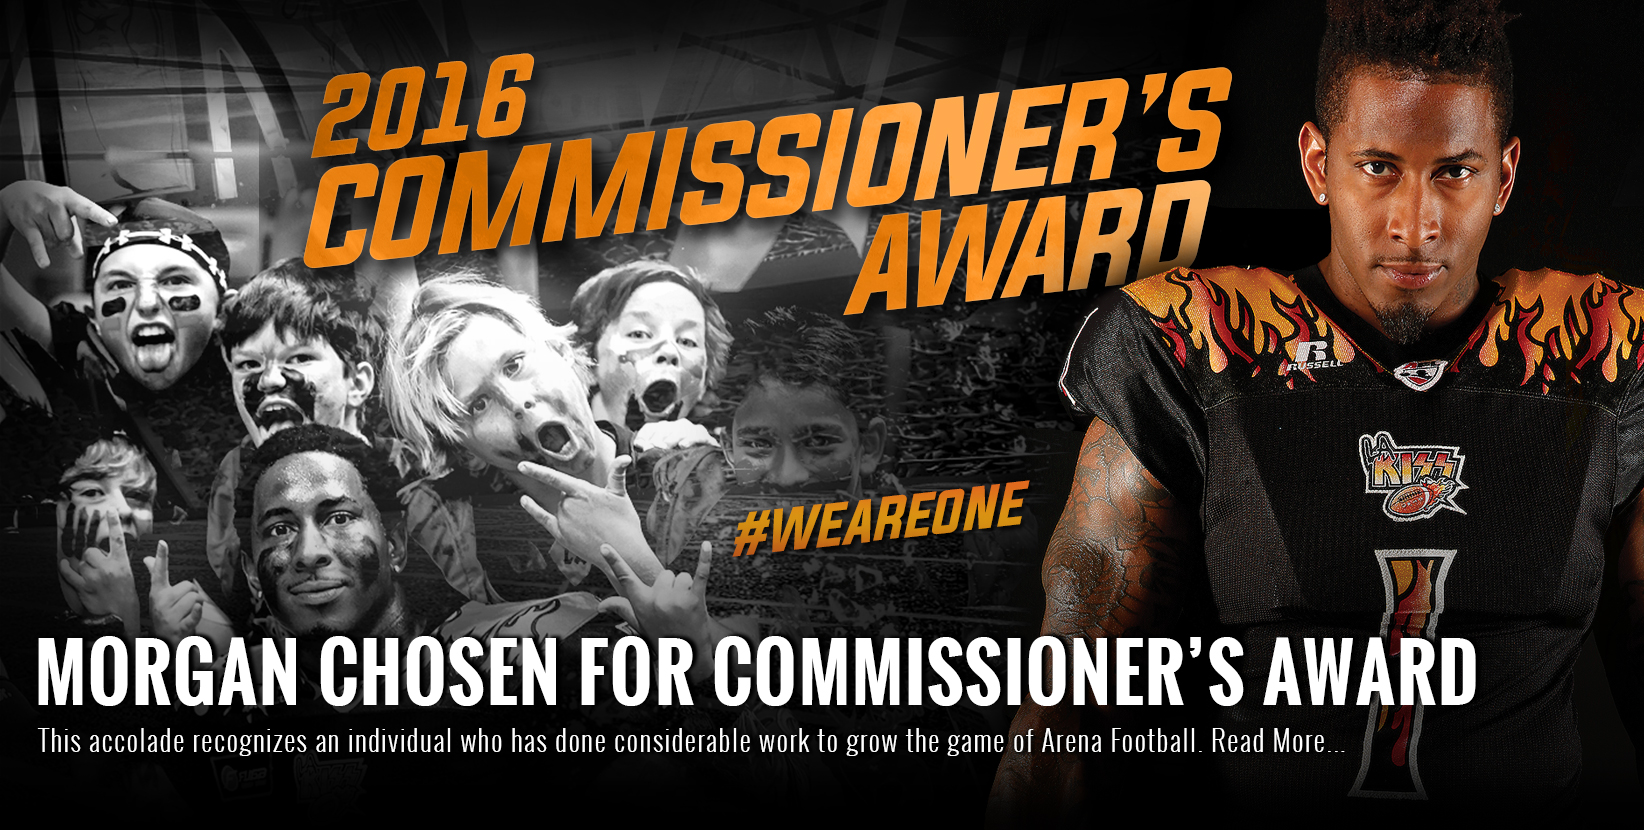 Morgan Chosen for Commissioner's Award